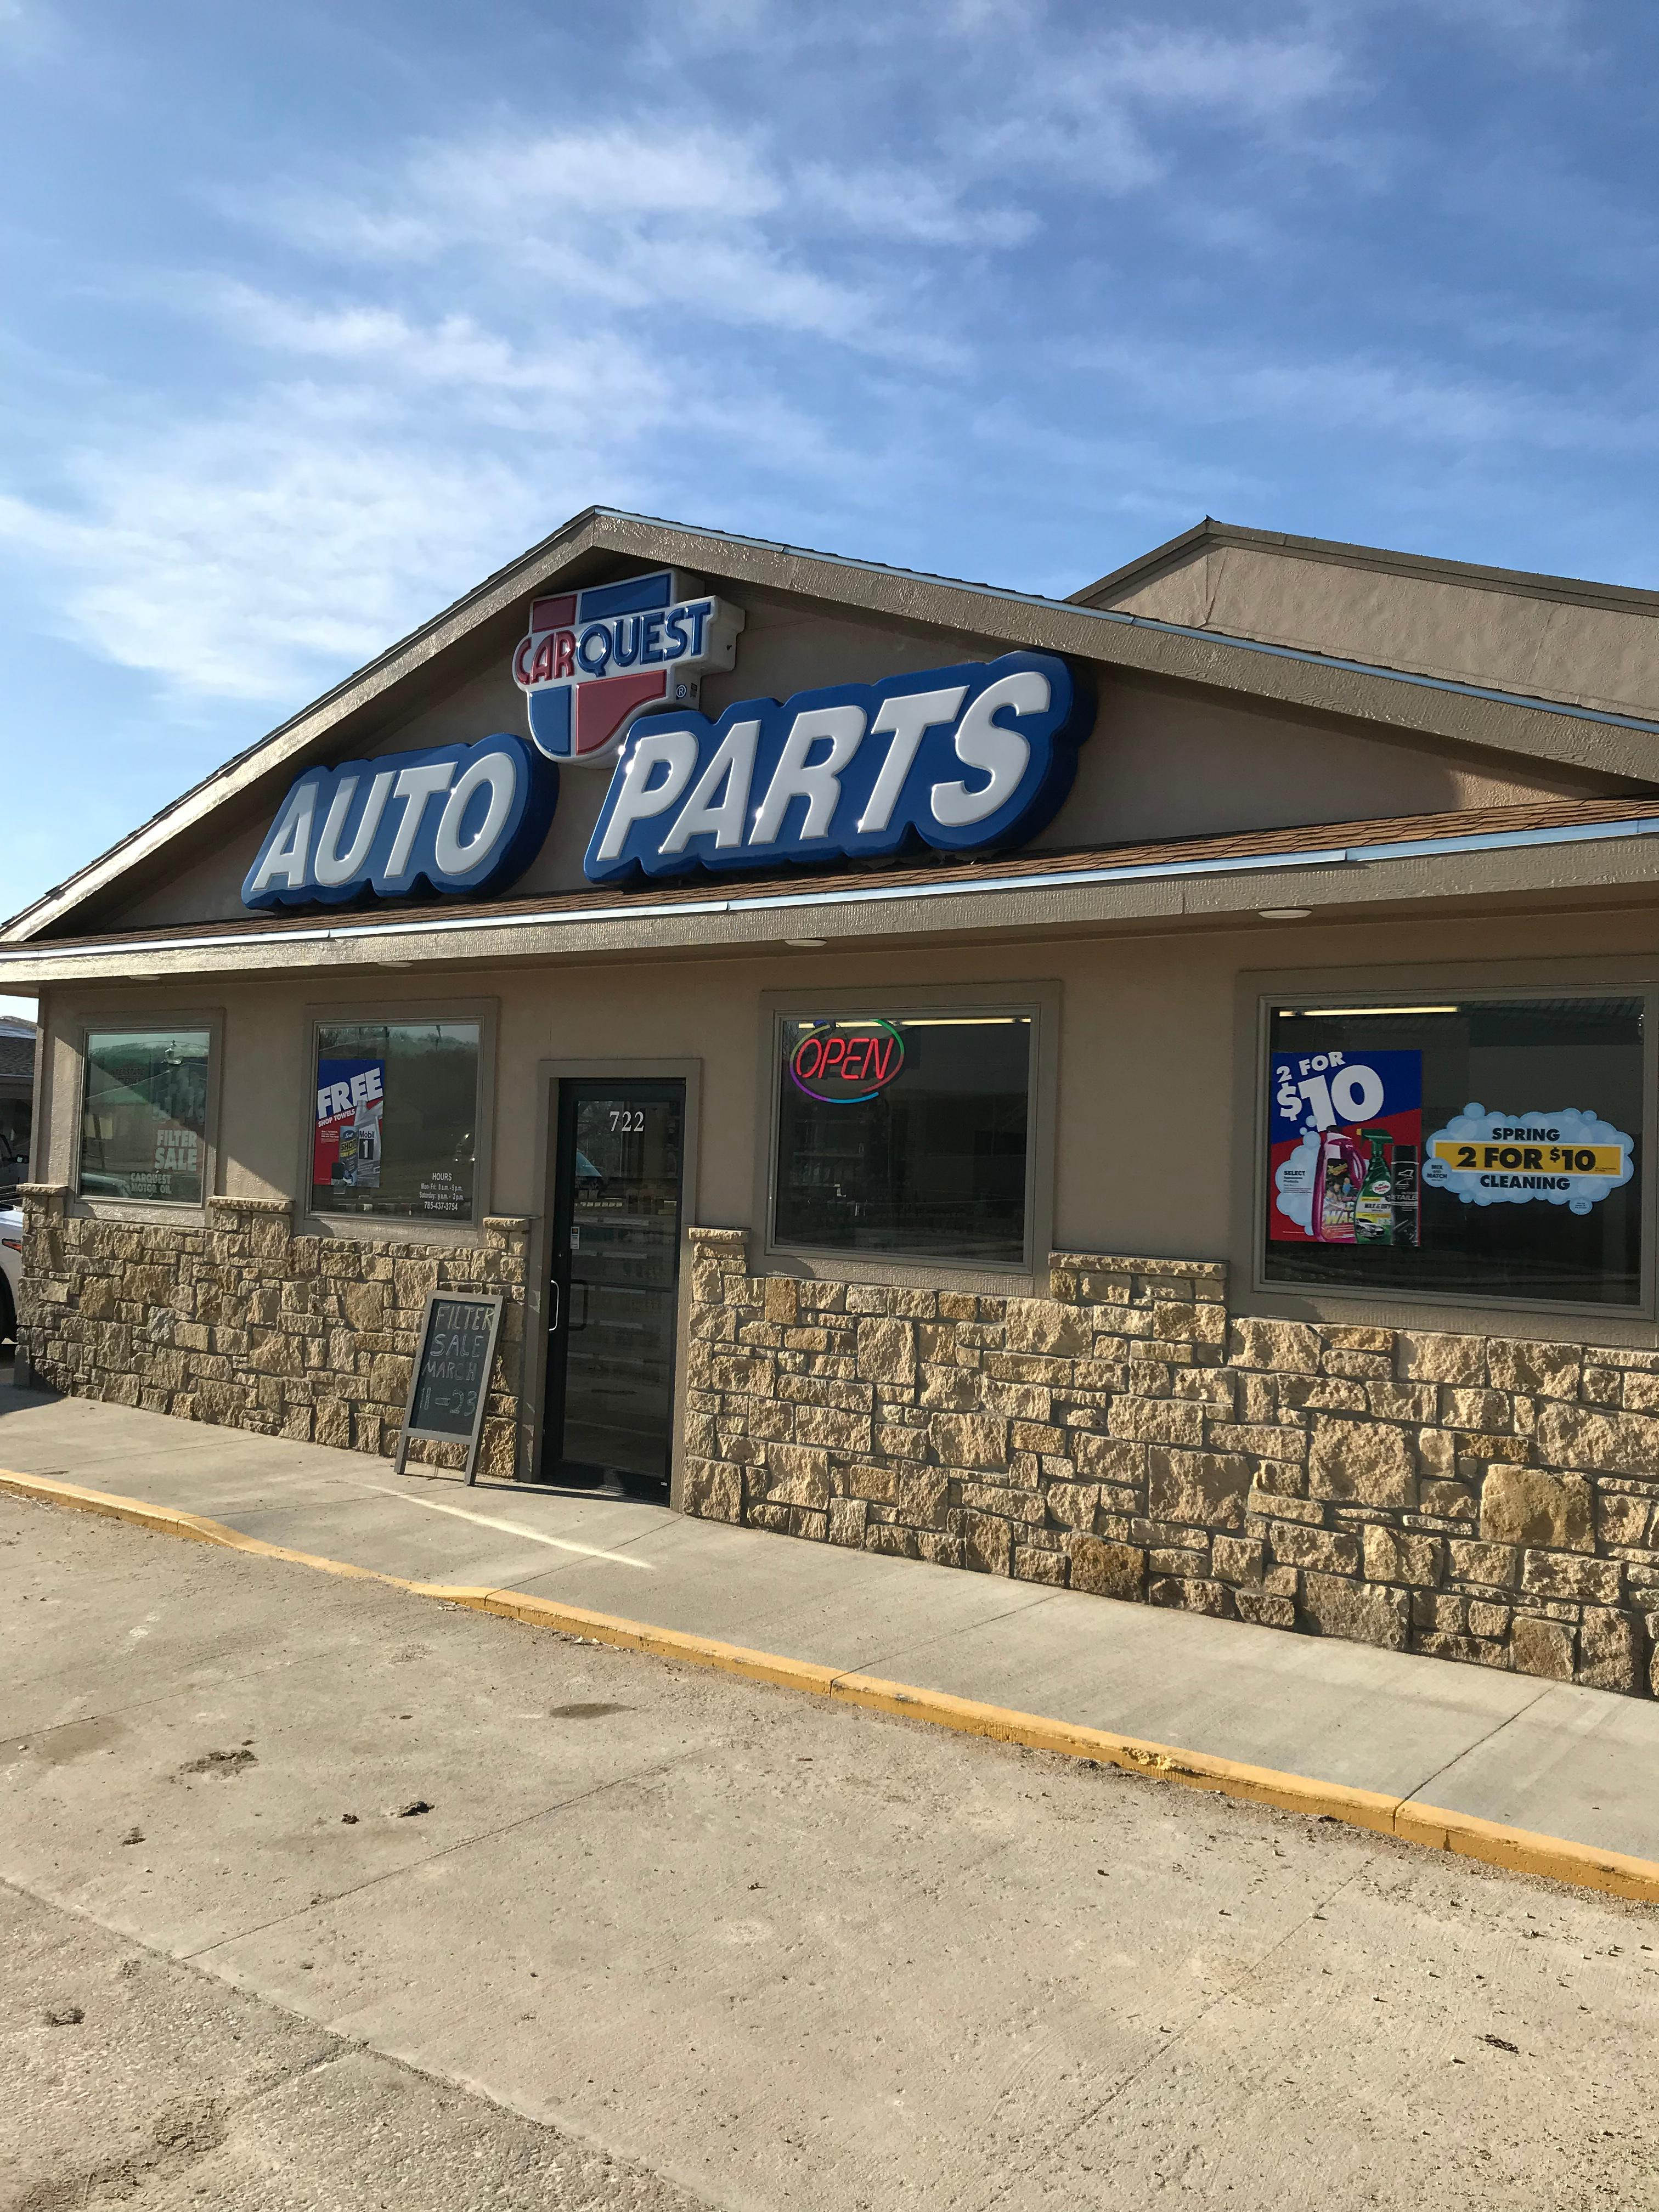 Carquest Auto Parts Carquest Of St Mary S 722 W Bertrand Ave St